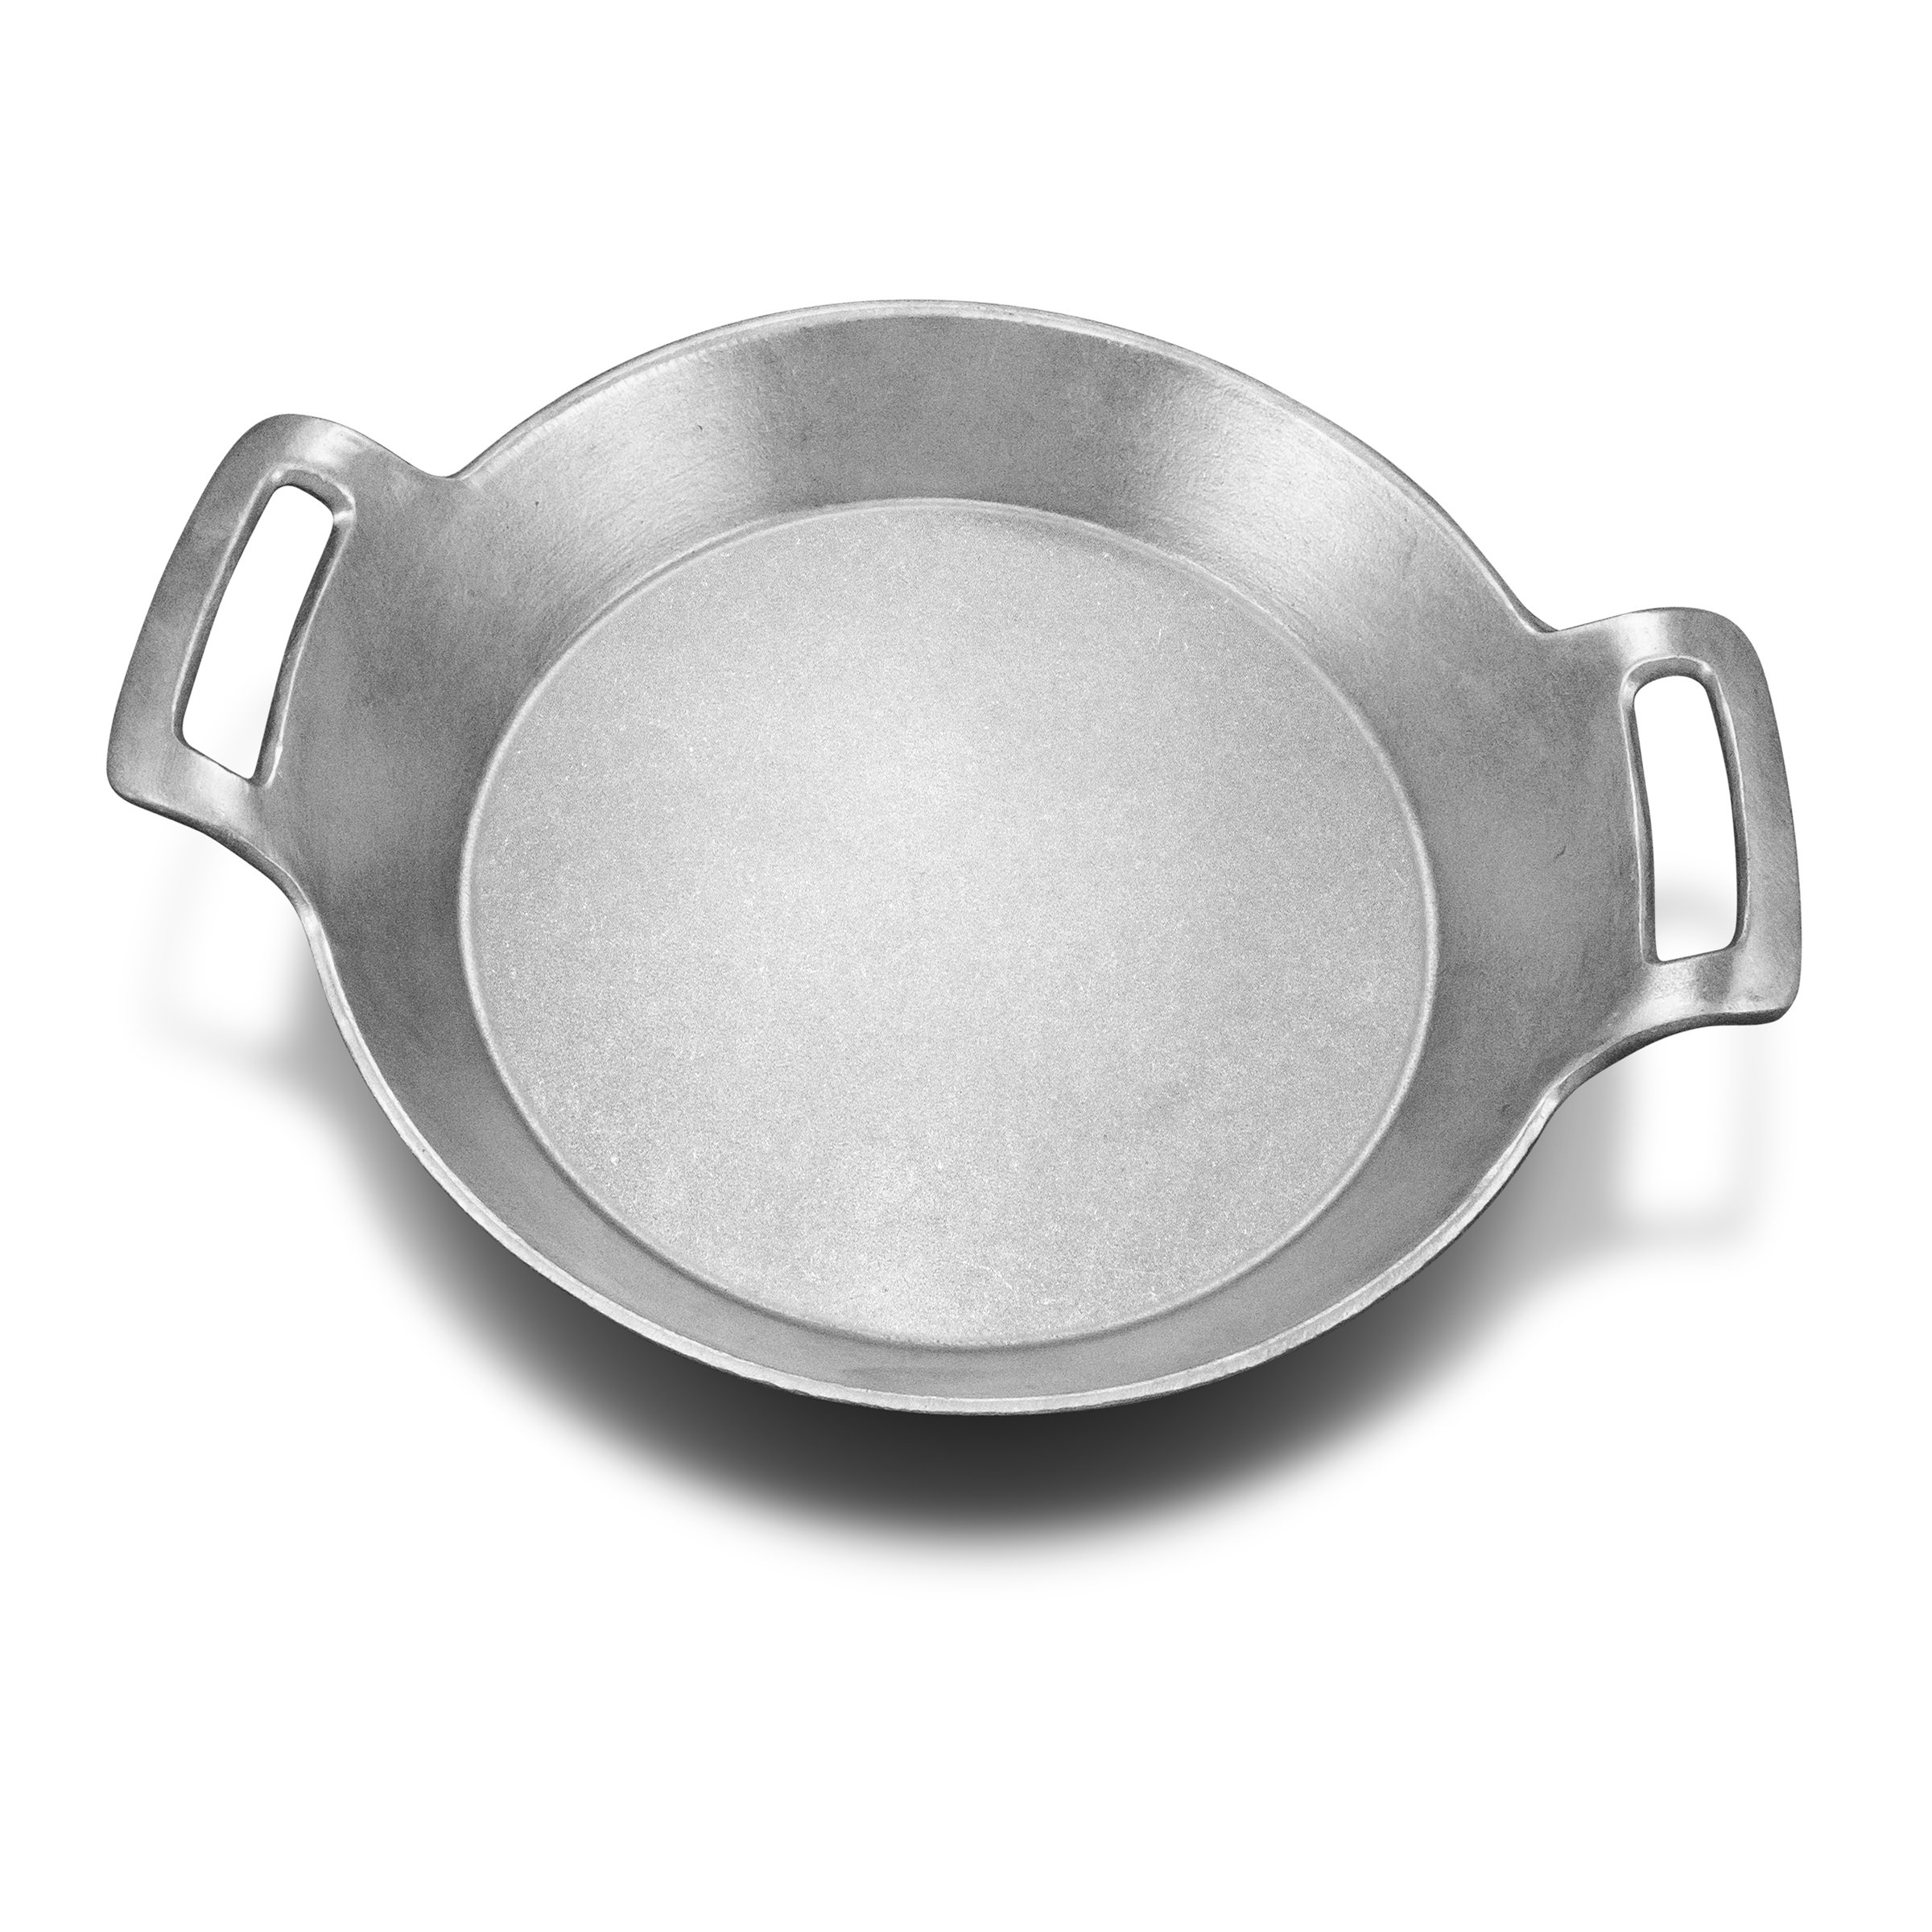 Wilton Armetale Gourmet Grillware Large Paella Cooking and Serving Pan, 16.5-Inch